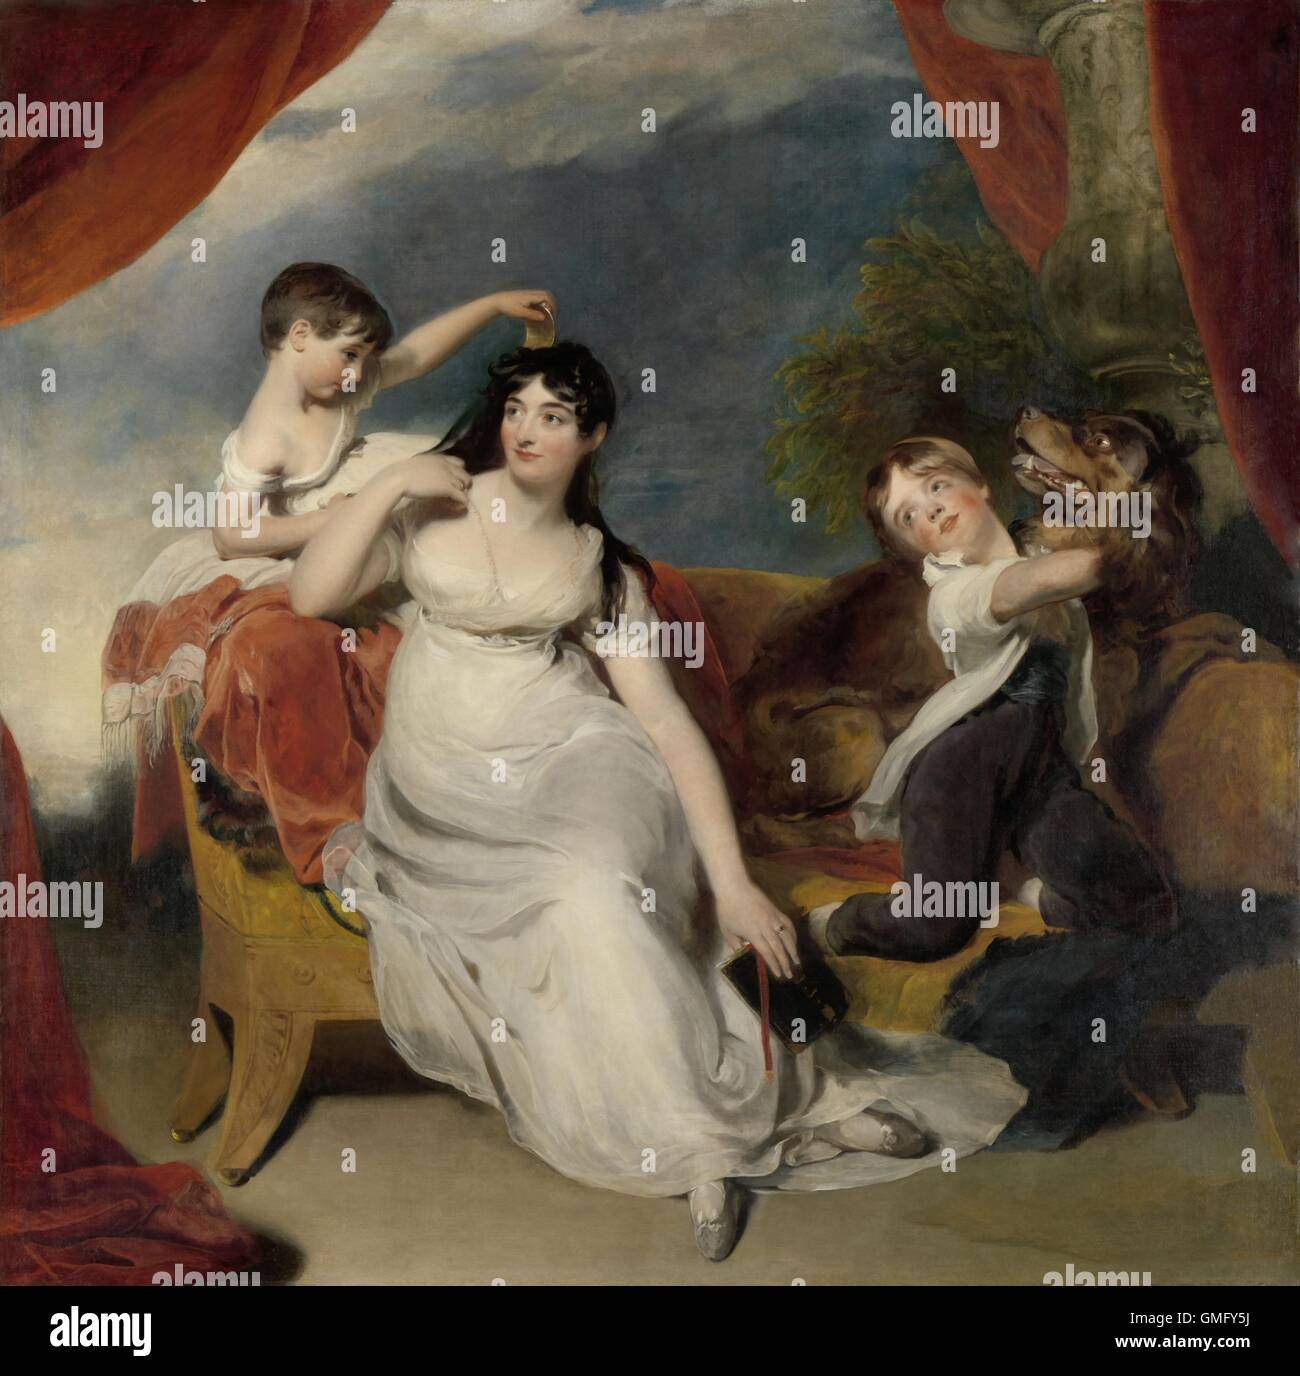 Maria Mathilda Bingham with Two of her Children, by Thomas Lawrence, c. 1810-18, oil on canvas. The painting previously - Stock Image